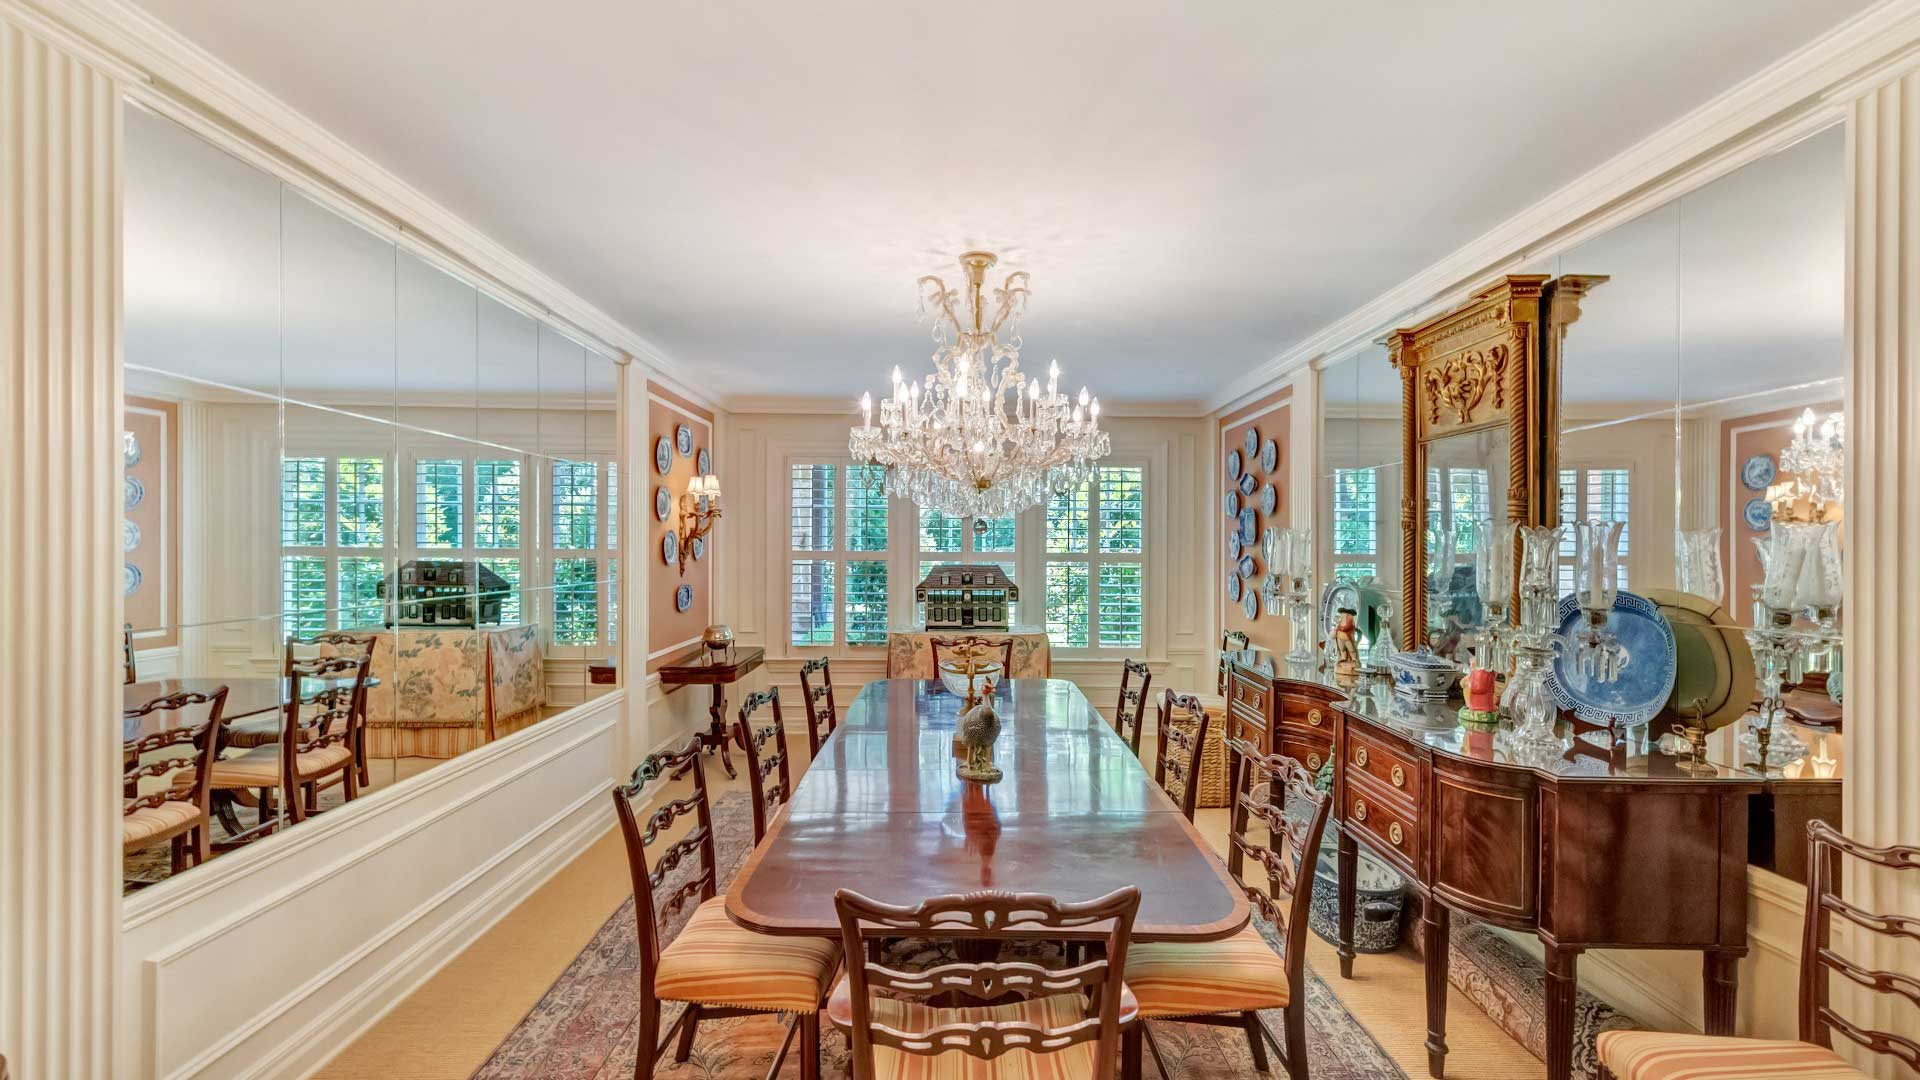 Mirror design dining room with carved wooden dining furniture and side-boards.